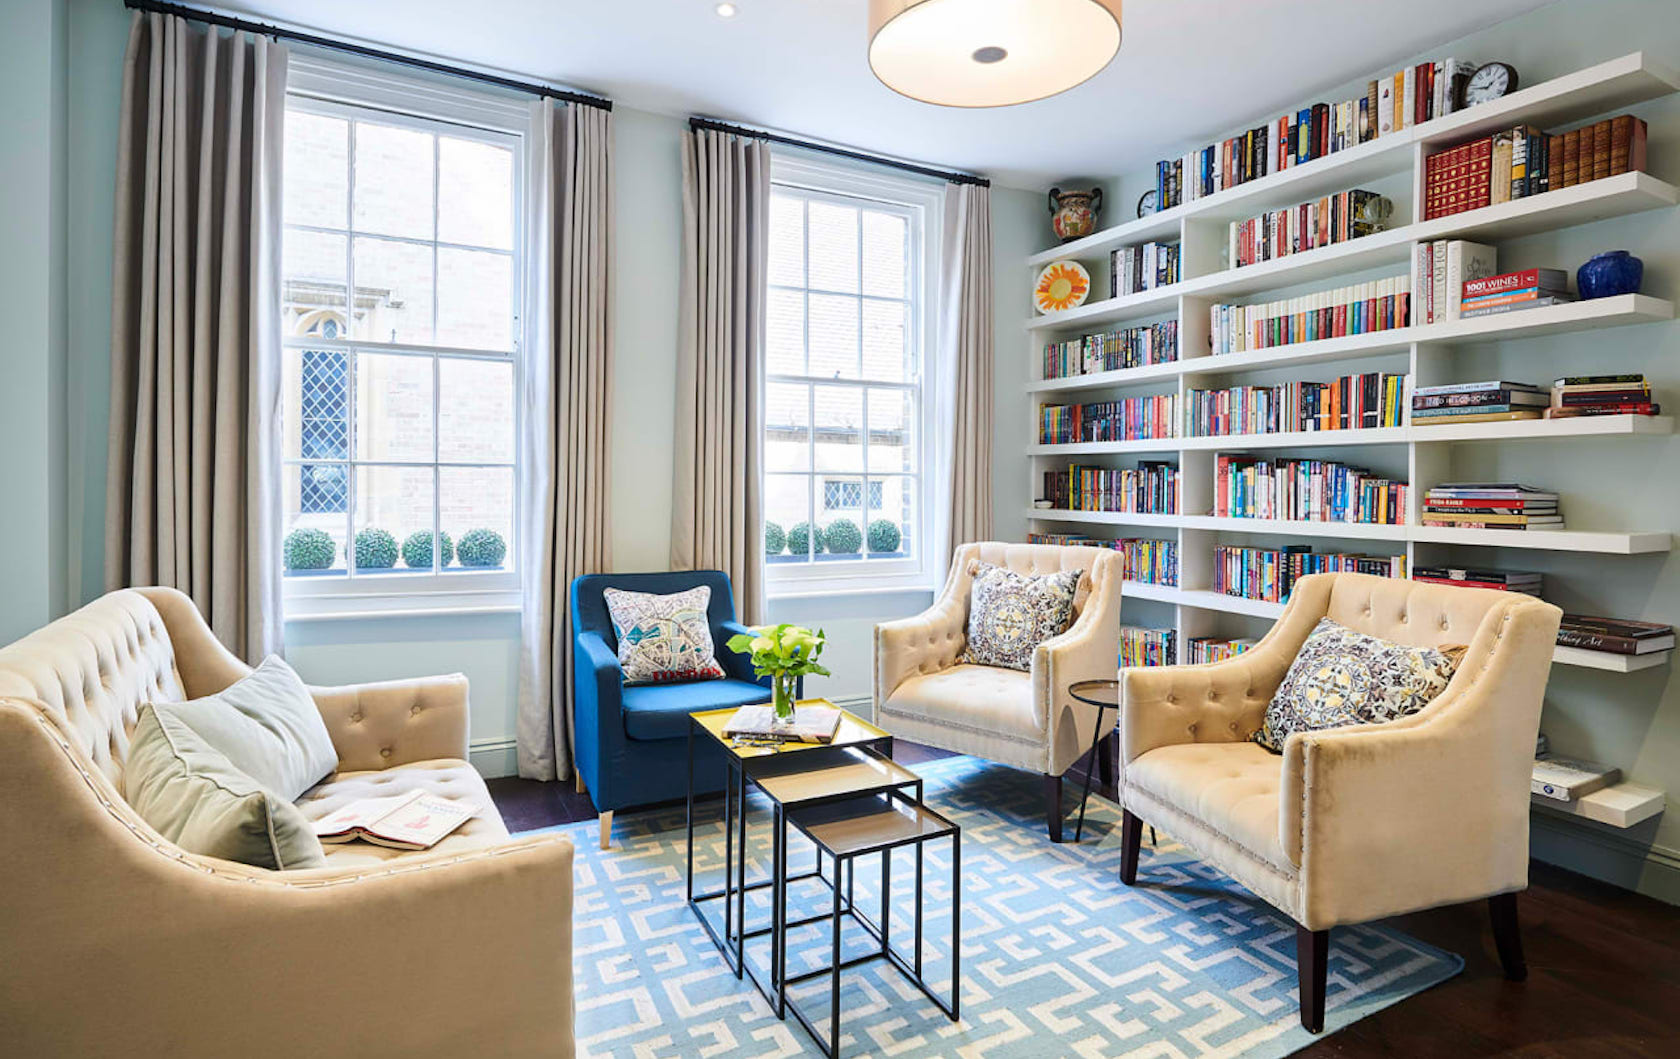 A Look Inside the York House in Kensington: A Serene Sanctuary